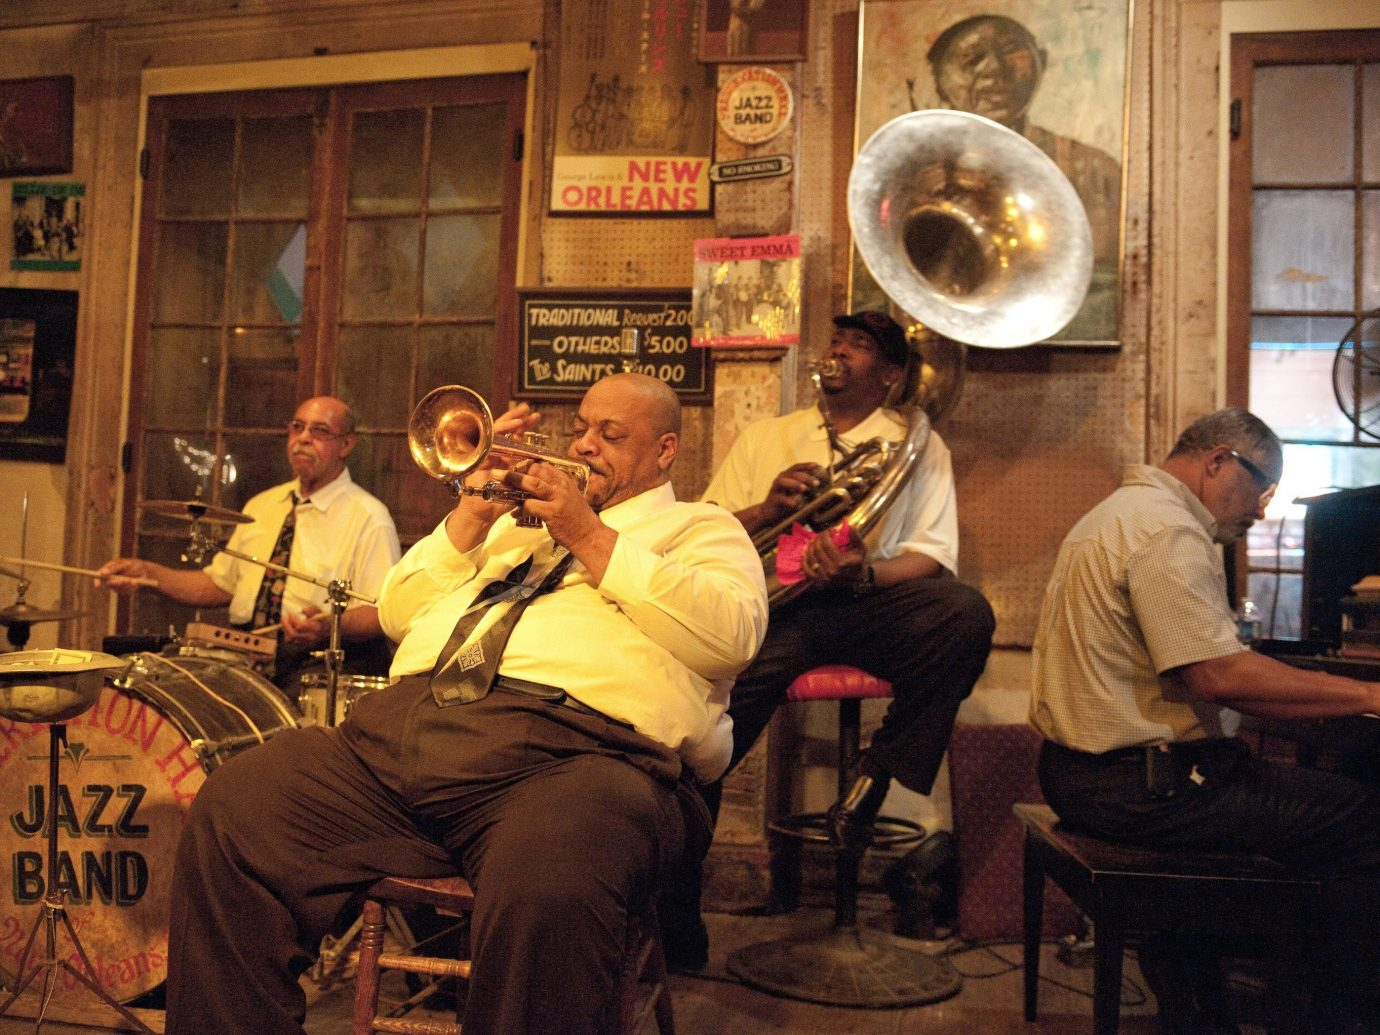 Big band playing in New Orleans Louisiana